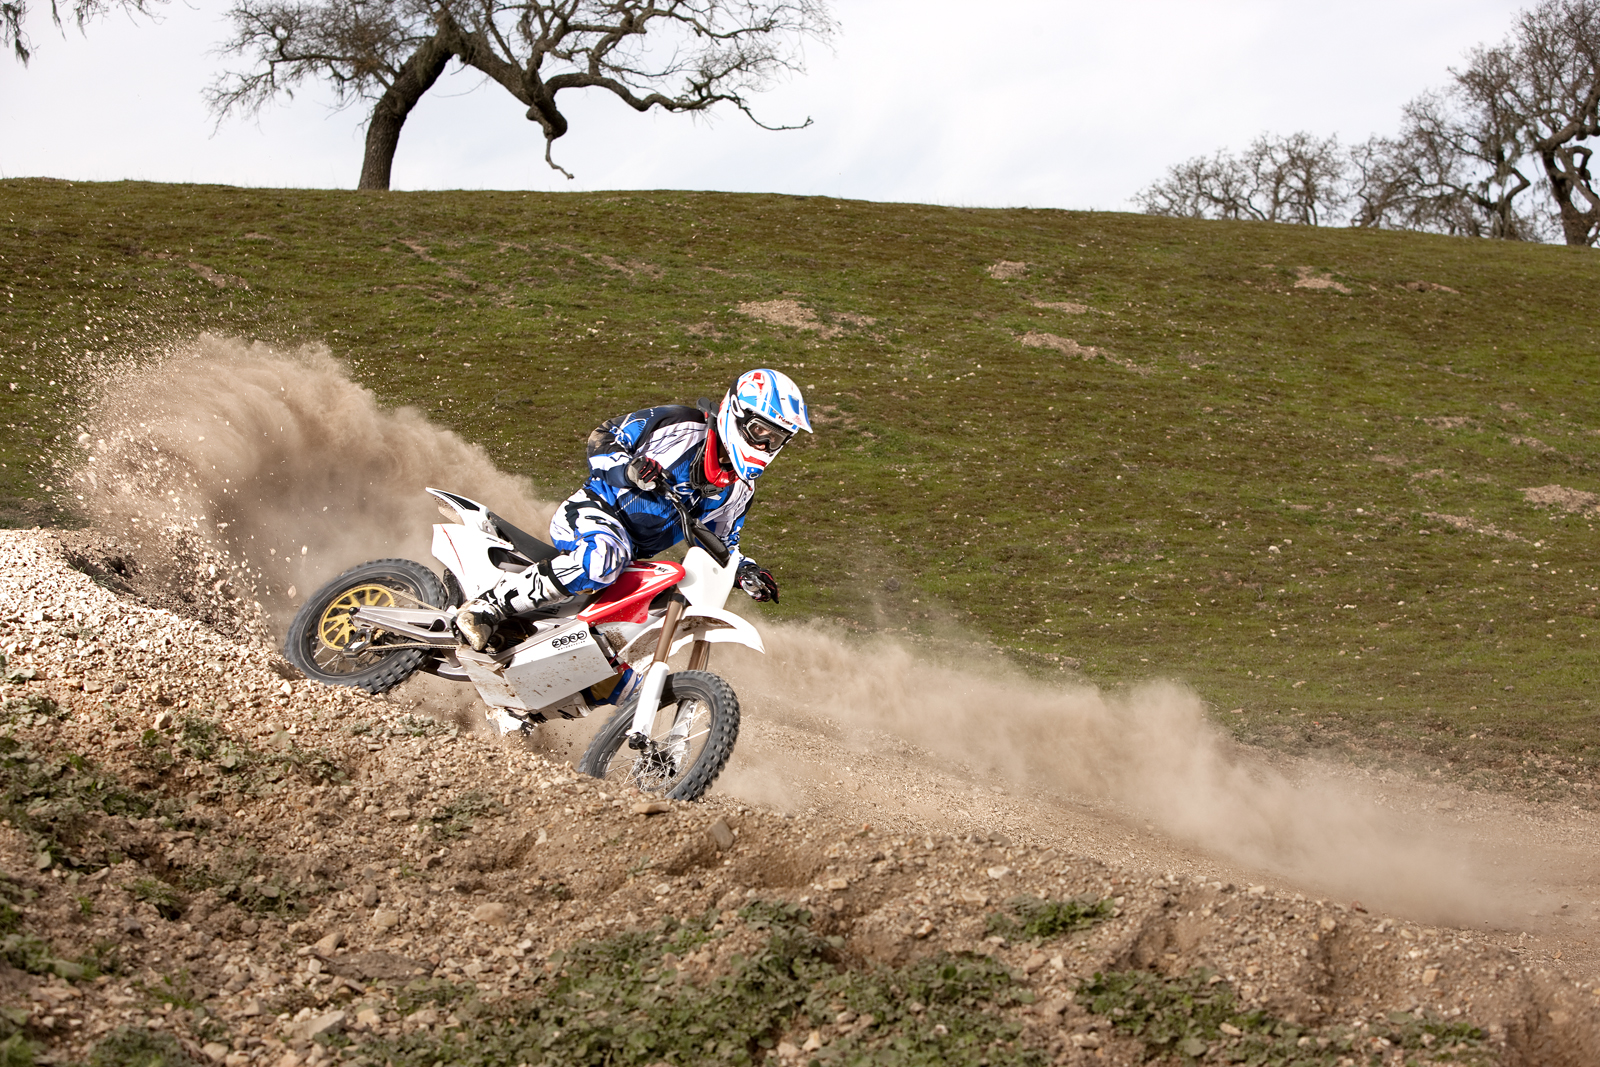 2010 Zero MX Electric Motorcycle: Zaca Station - Rock Blaster